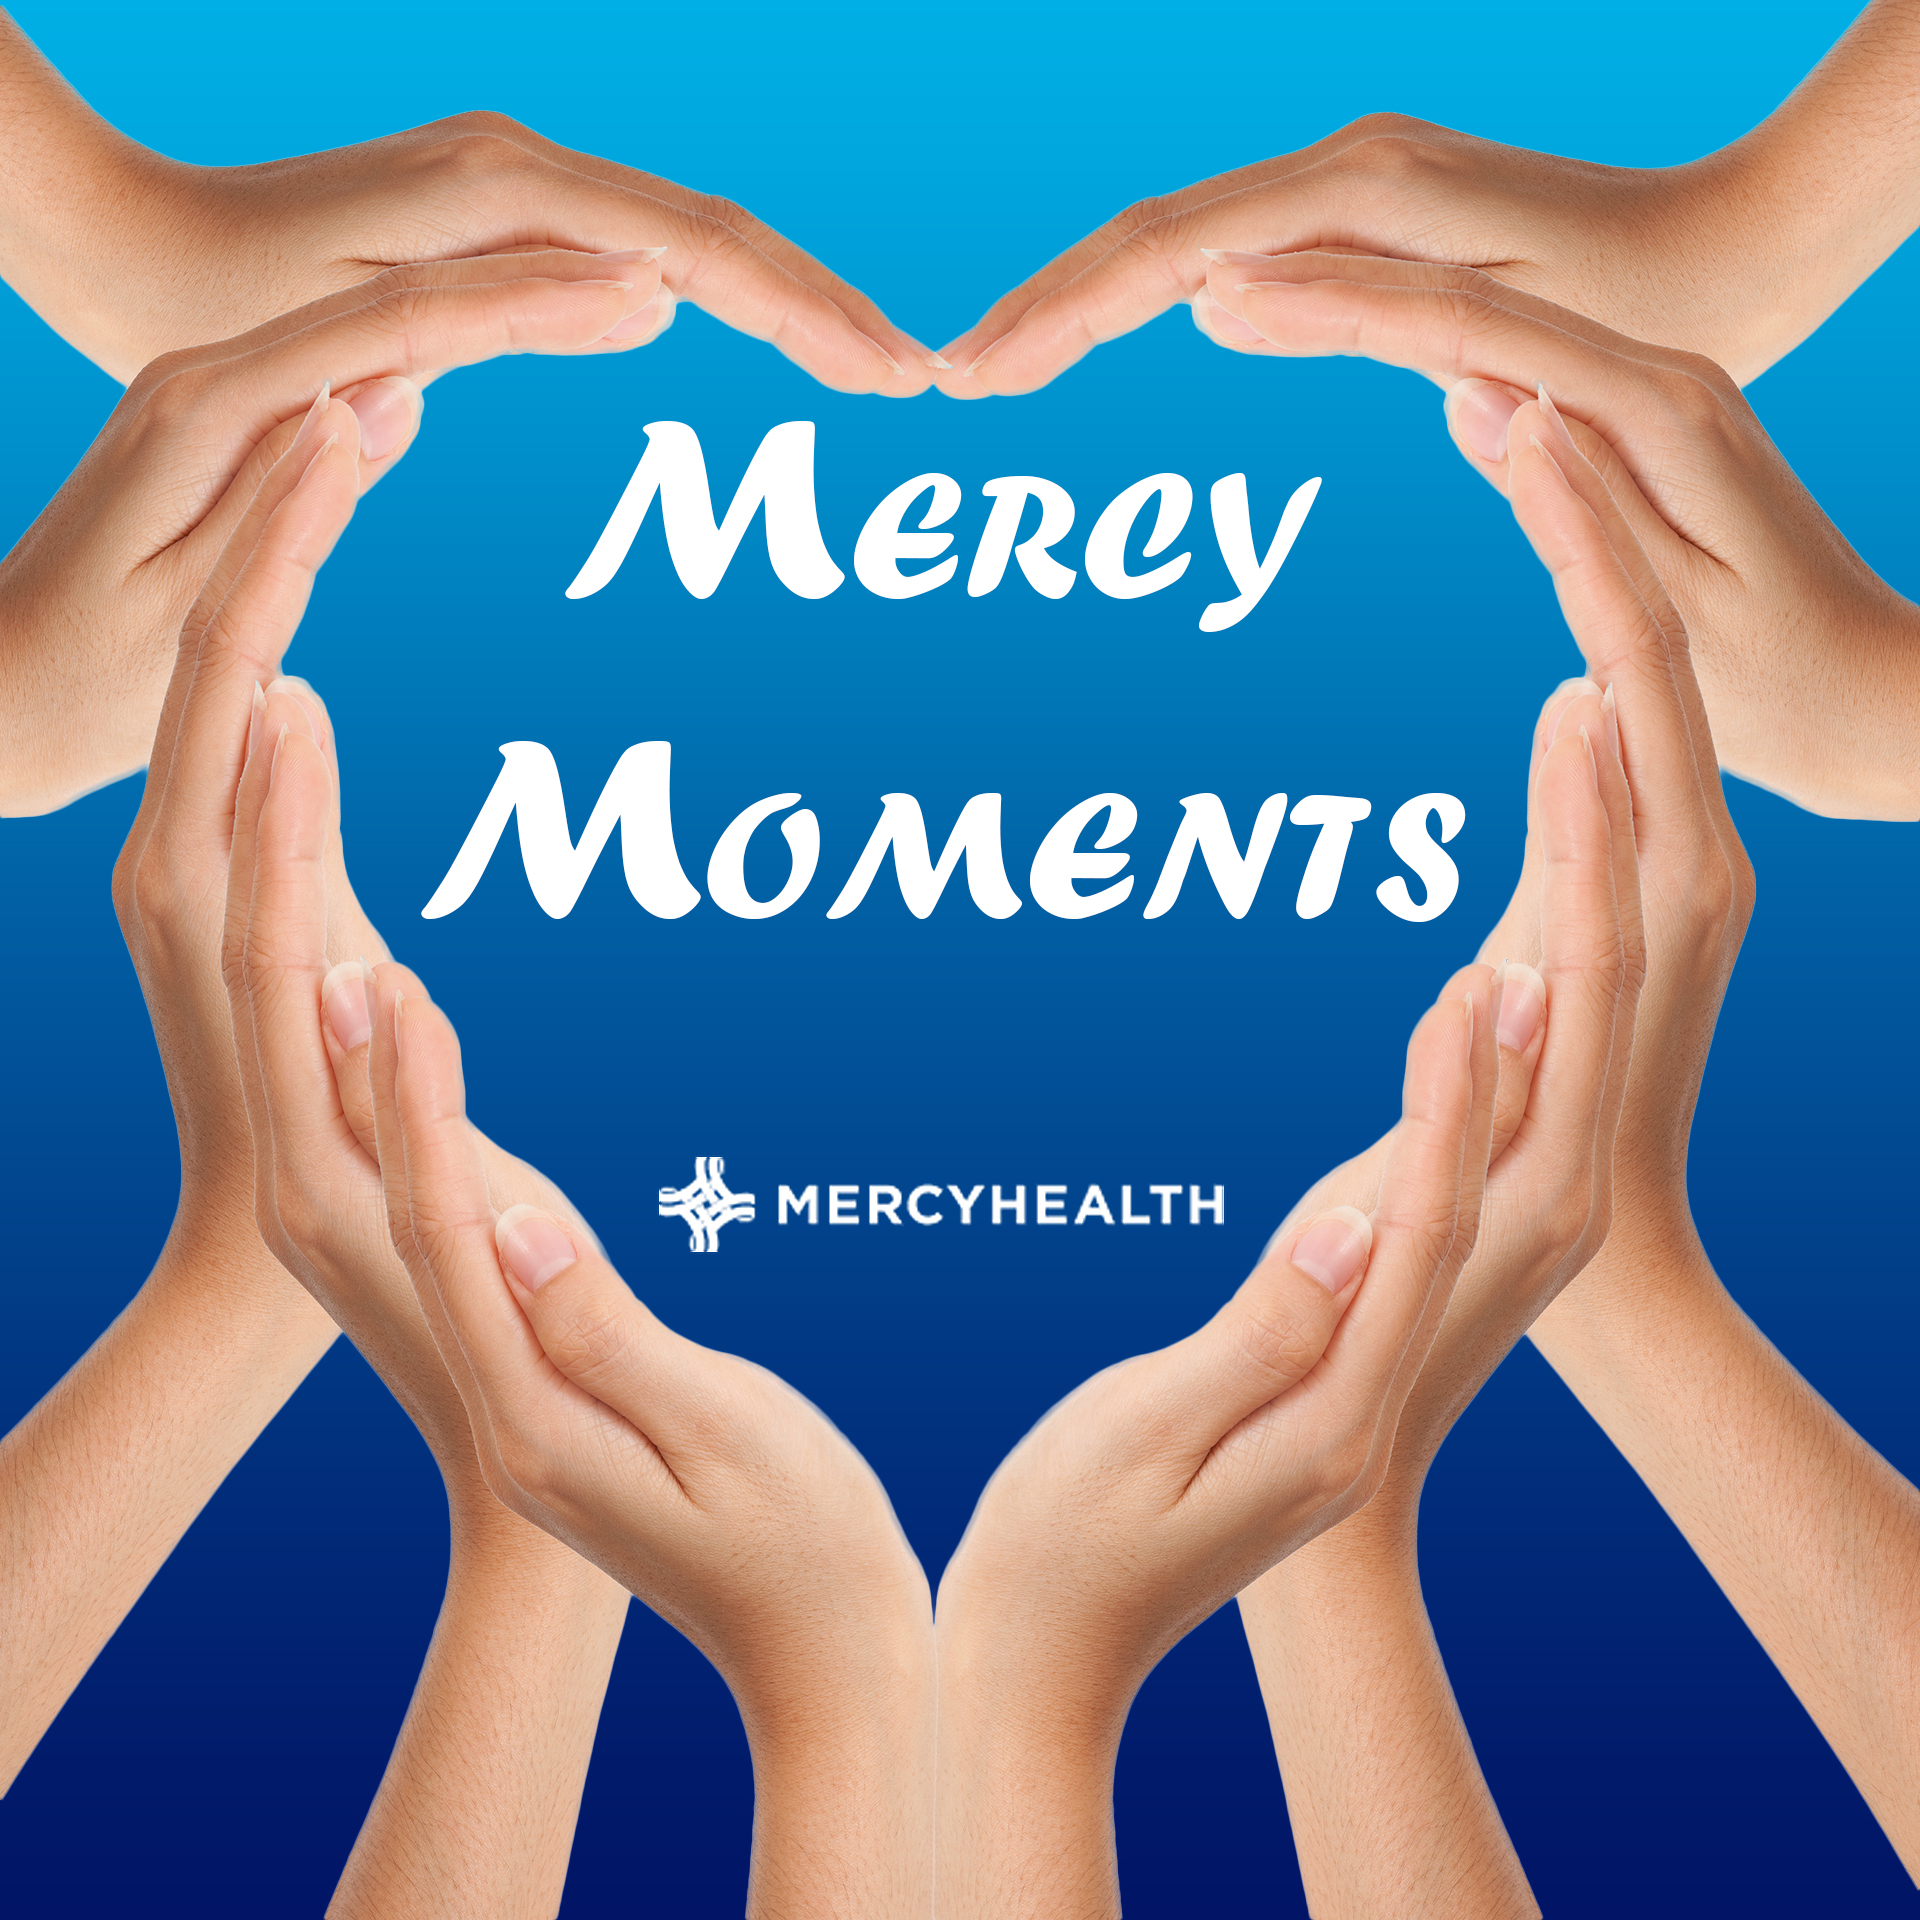 Mercy Moments - logo.jpg